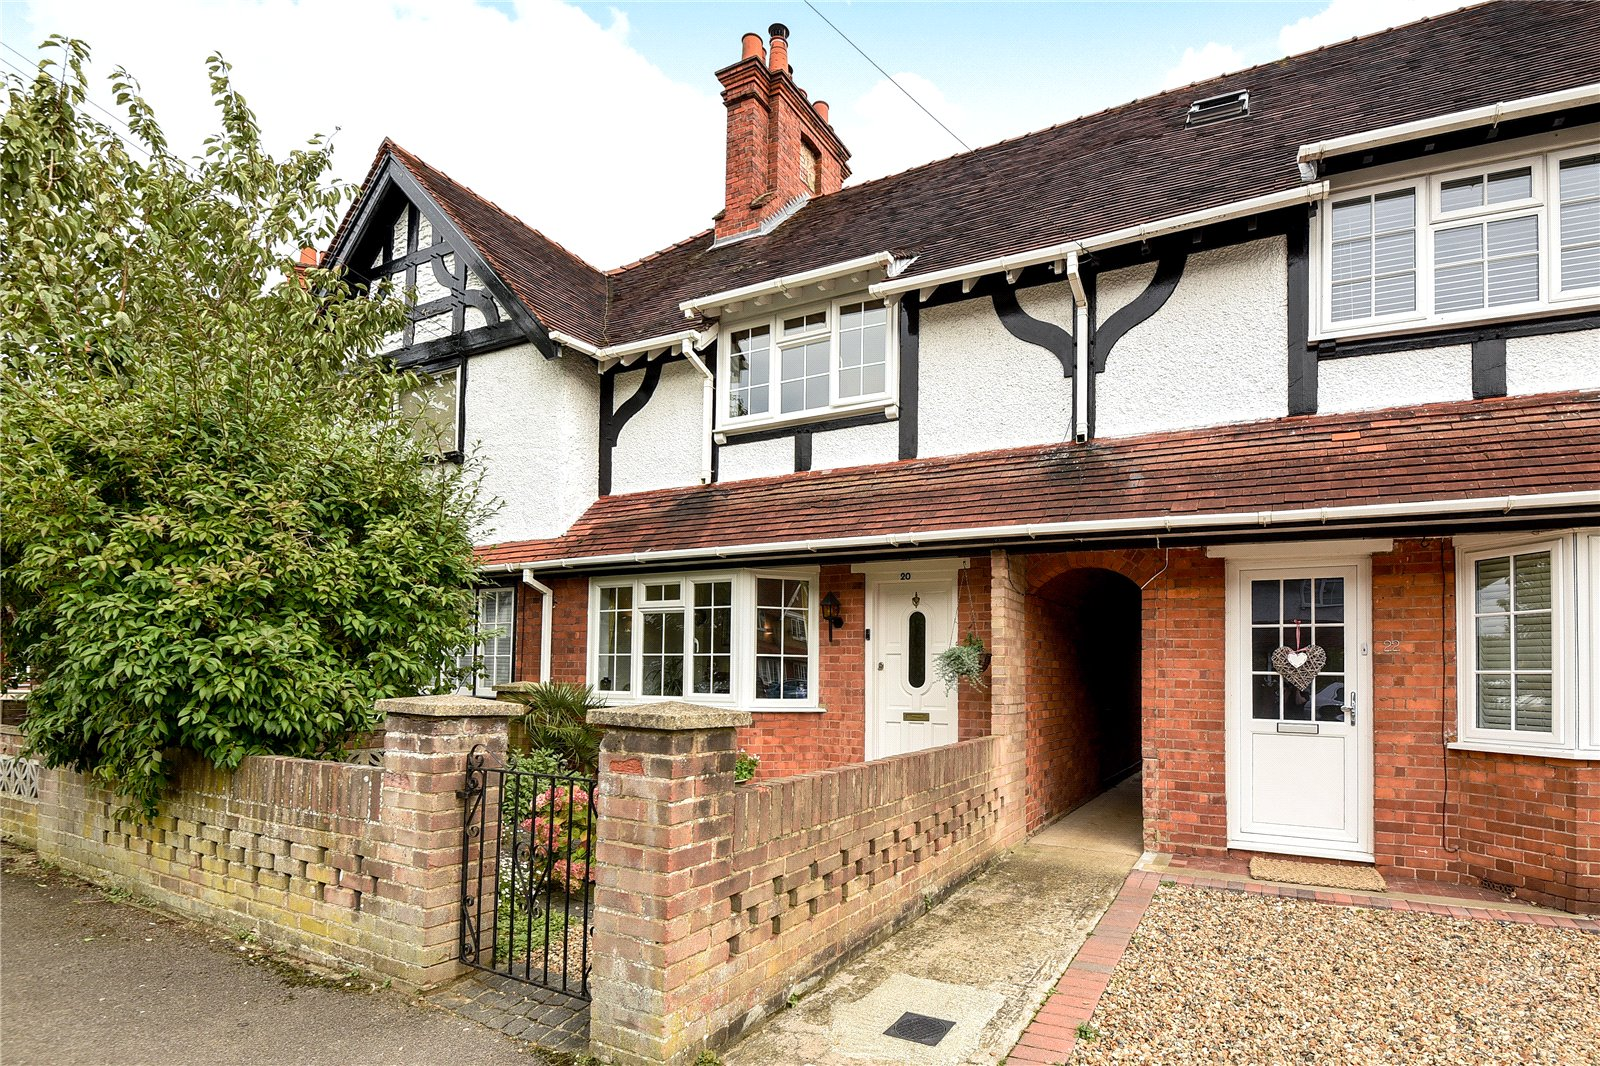 3 Bedrooms Terraced House for sale in Portlock Road, Maidenhead, Berkshire, SL6